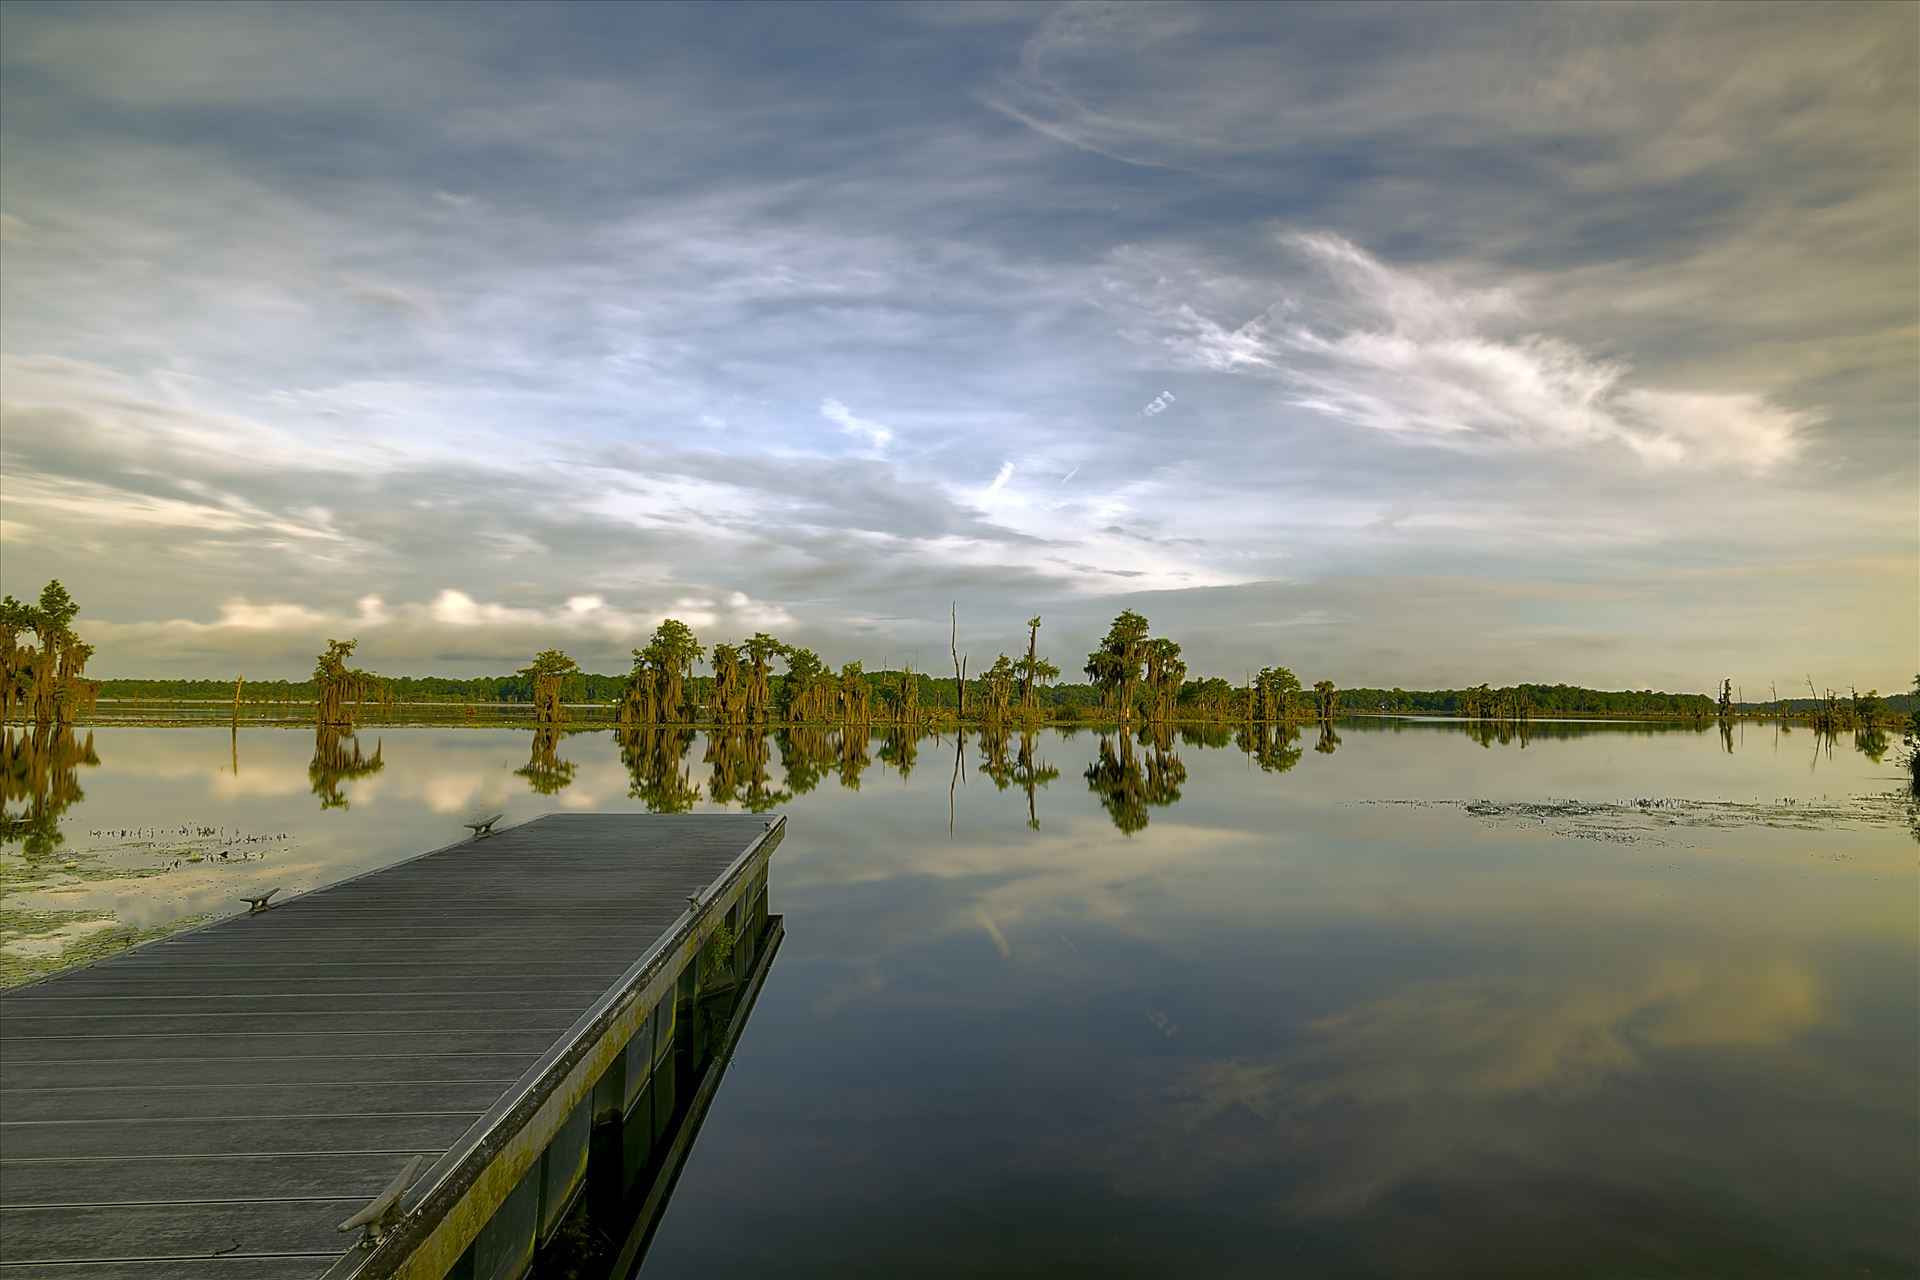 long exposure boat dock at deer point lake 8500354.jpg dock extending out into Deer Point Lake in Bay County, Florida